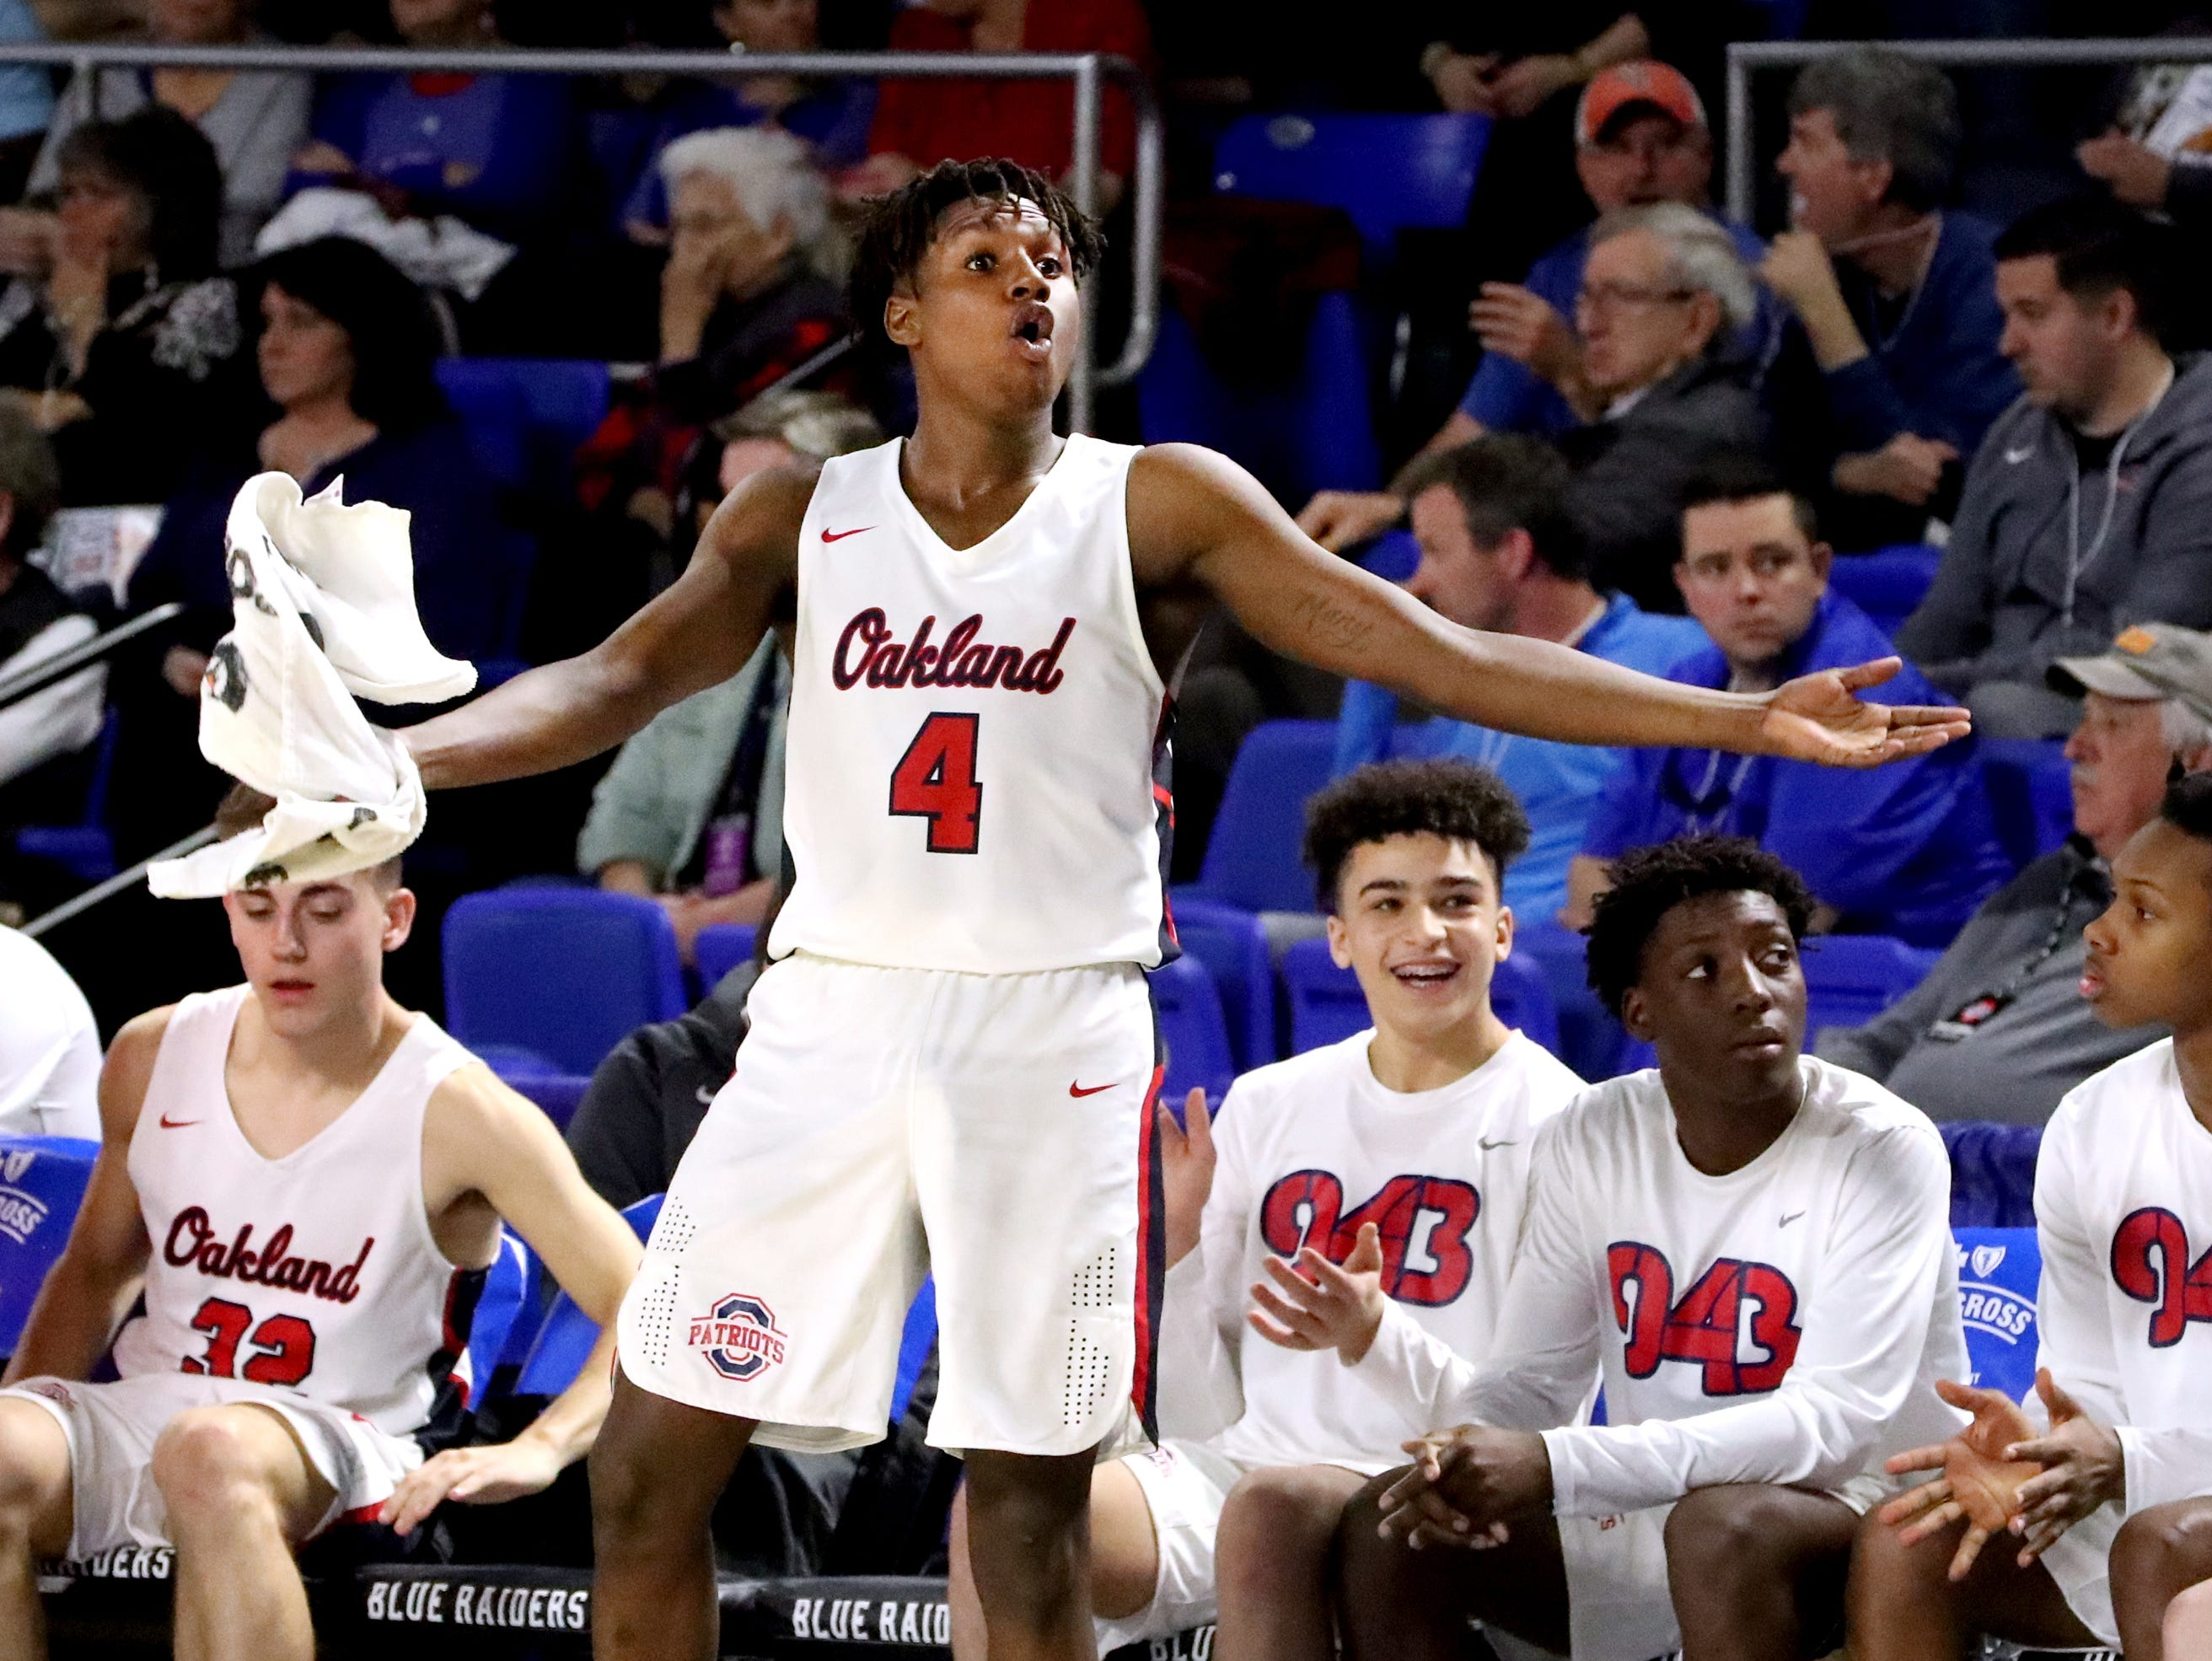 Oakland's Mandrell Grant (4) tries to get the crowd pumped as the game is tied late in the fourth quarter during the quarterfinal round of the TSSAA Class AAA Boys State Tournament, against Brentwood, on Thursday, March 14, 2019, at Murphy Center in Murfreesboro, Tenn.